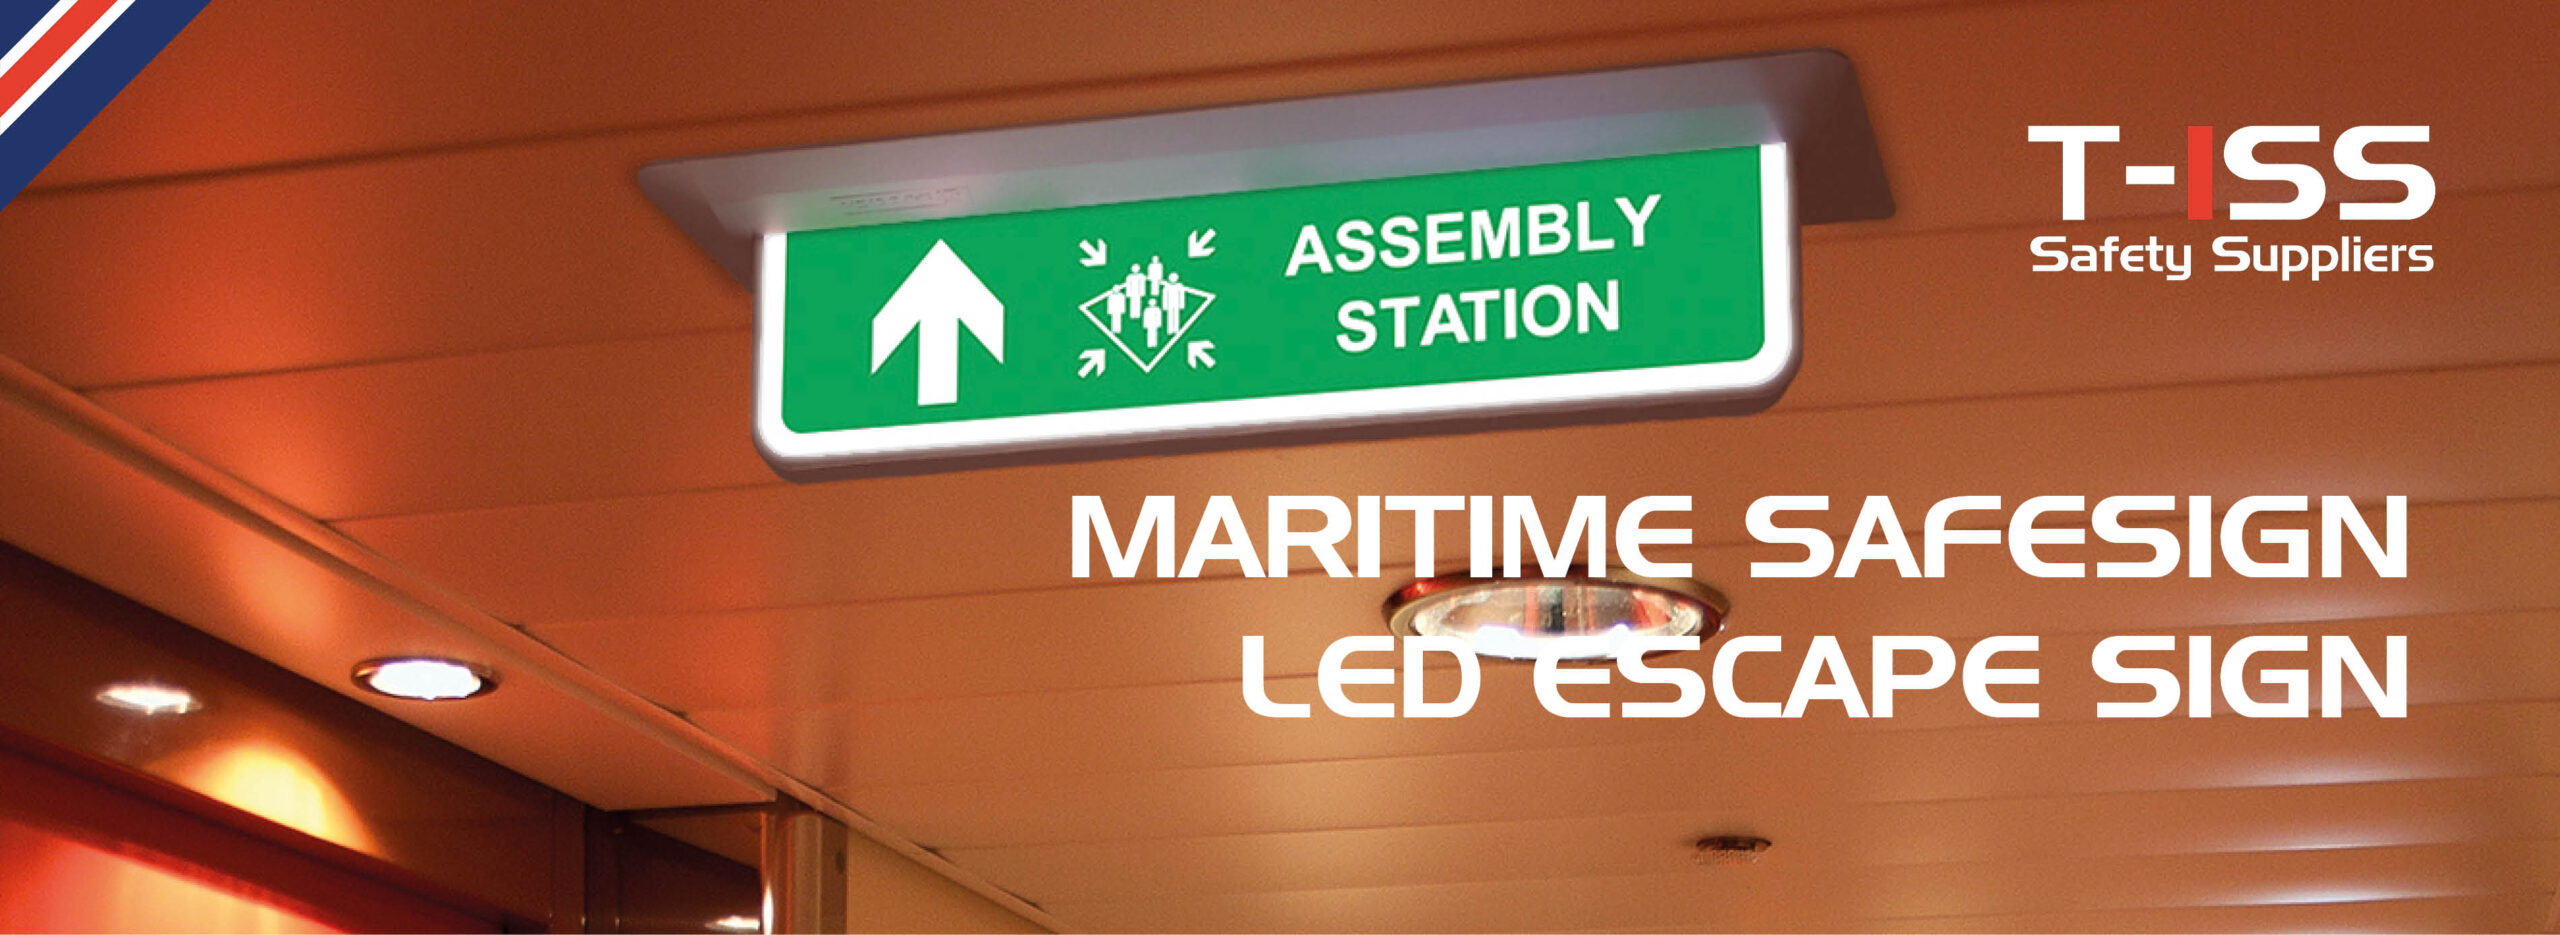 SafeSign LED Escape Sign by T-ISS Safety Suppliers